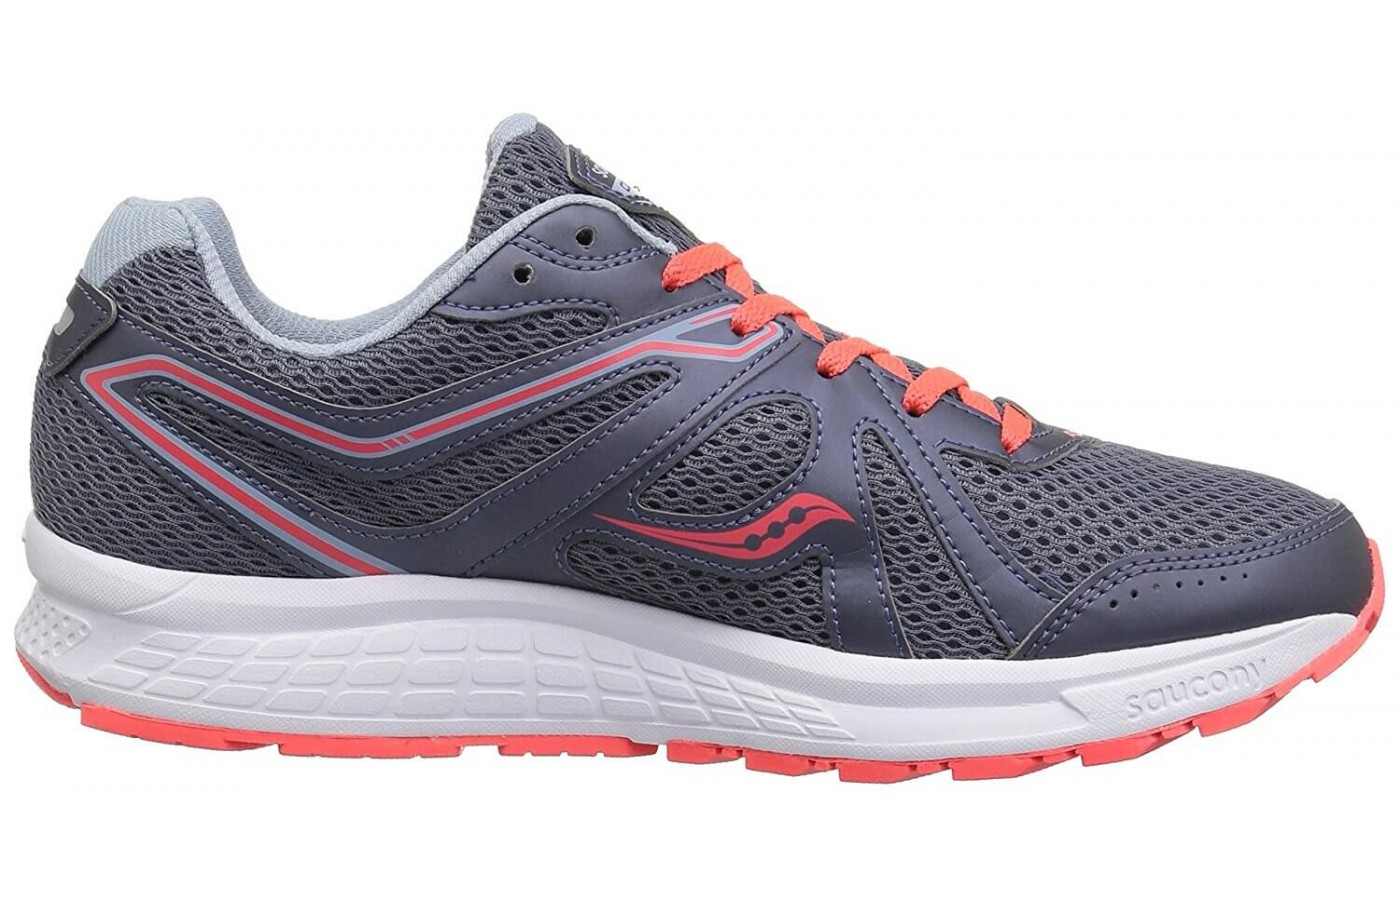 The Saucony Cohesion 11 has a mesh upper